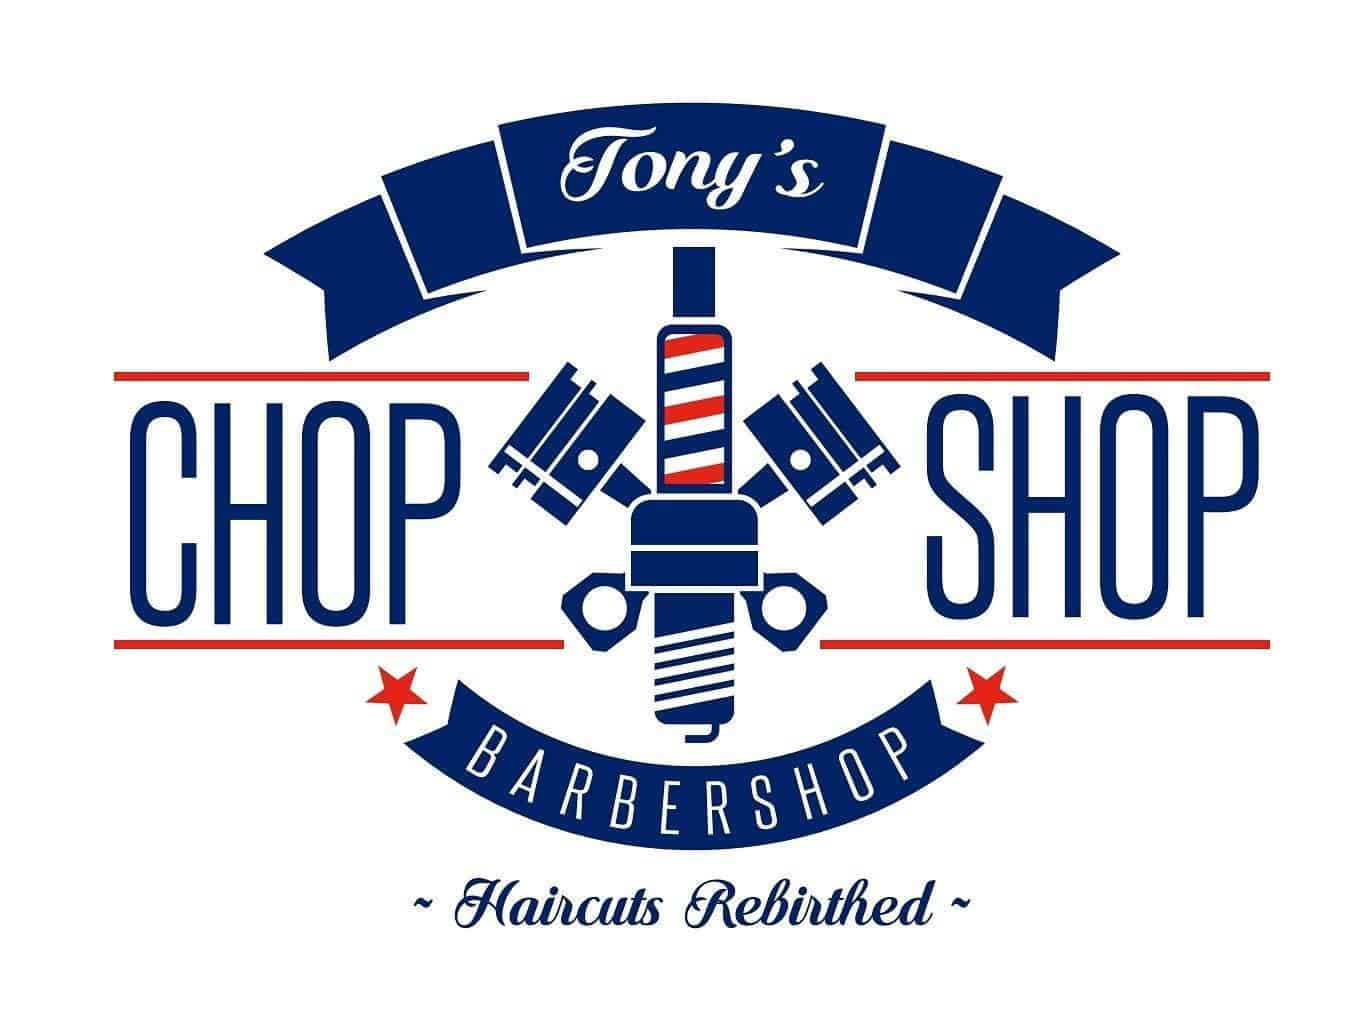 Fortitude Valley Barber - Tony's Chopshop Barbershop